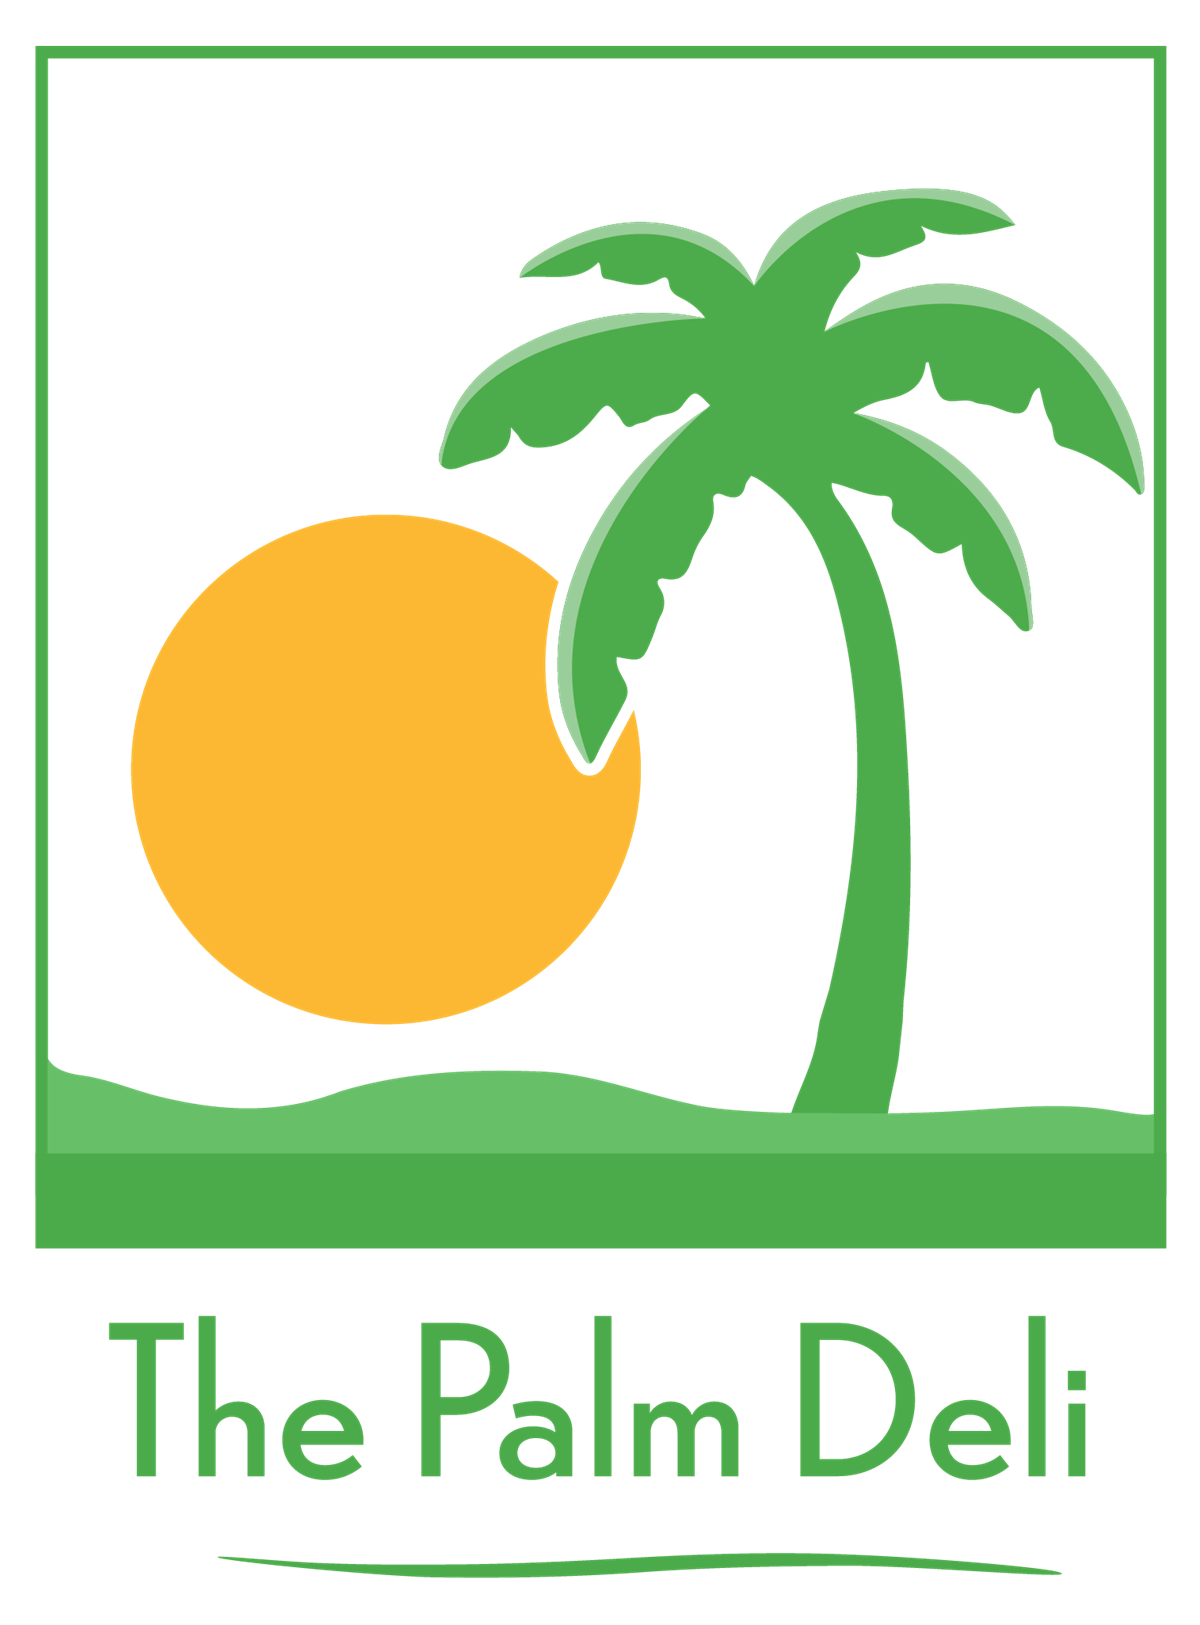 The Palm Deli - Homepage